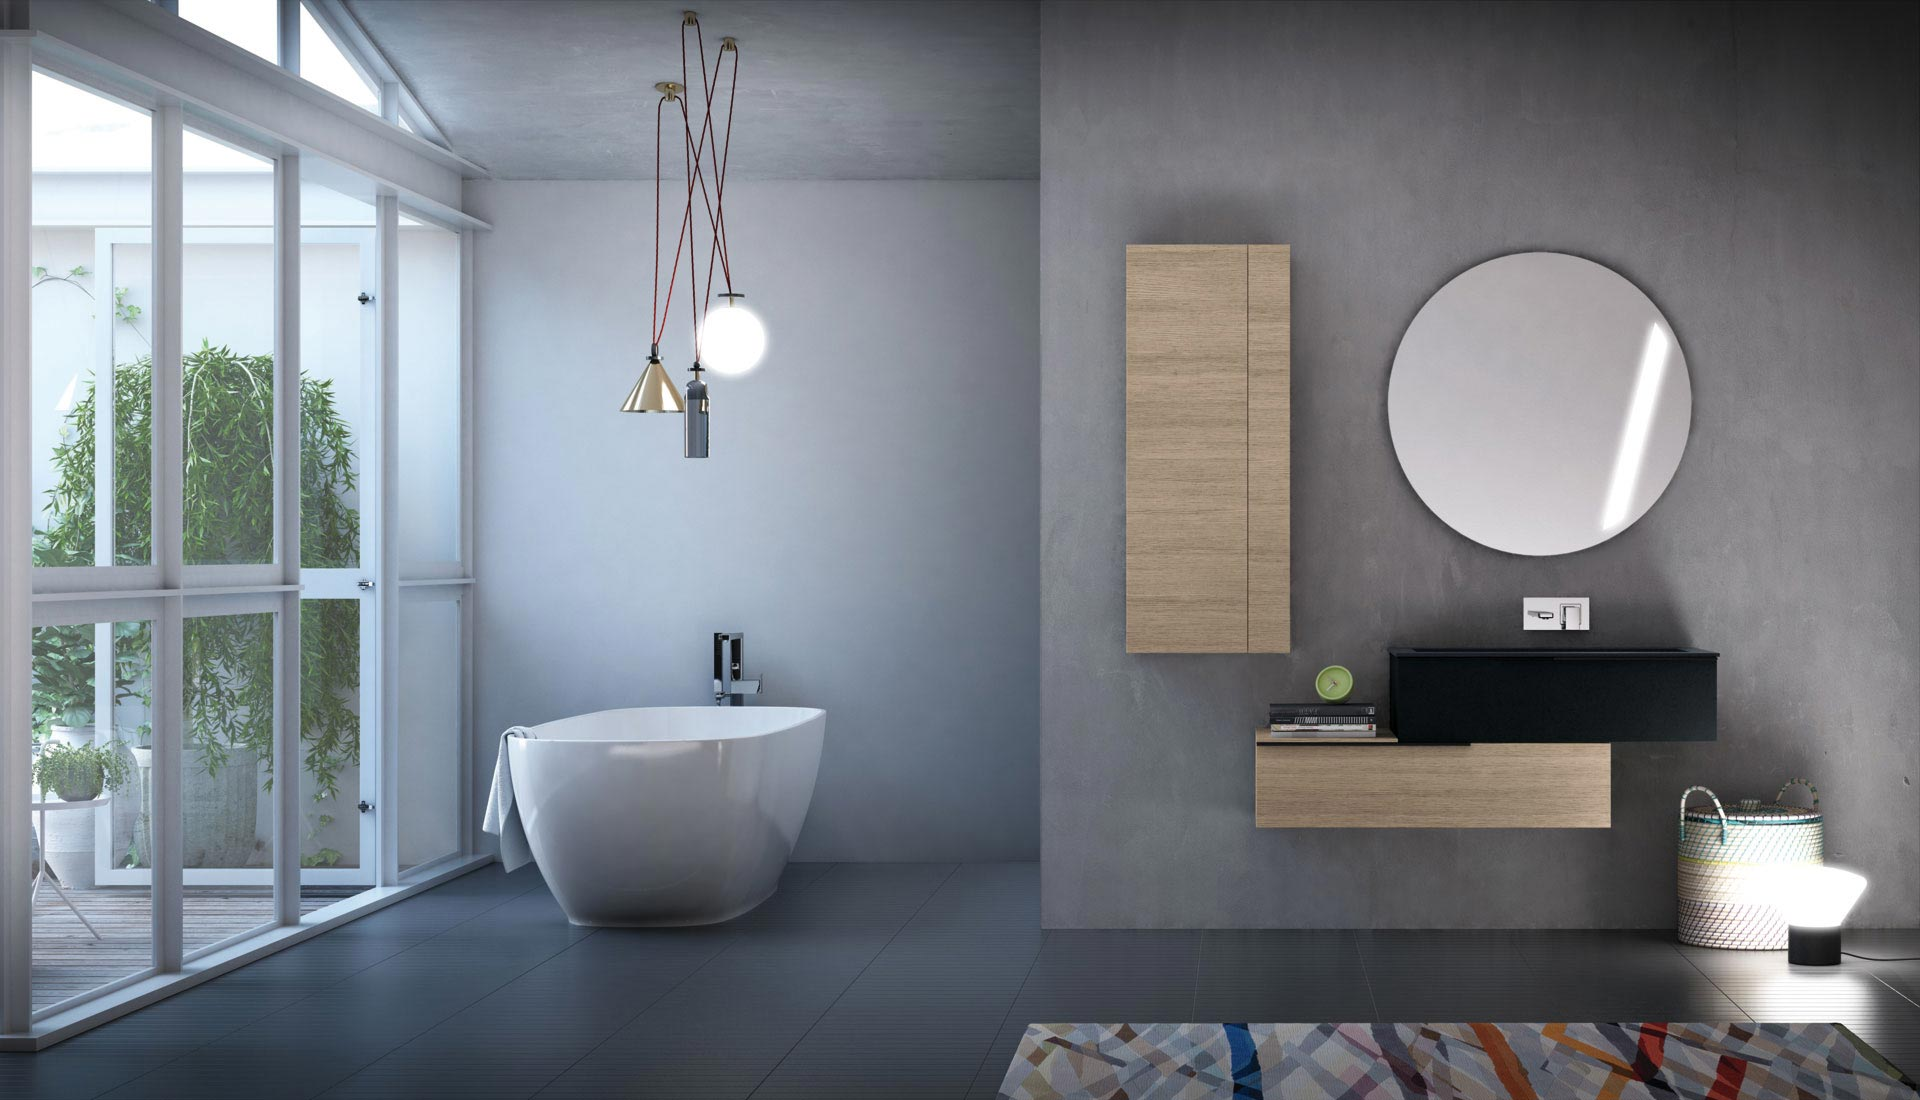 puntotre bathrooms furniture and bath furnishing ideas - Arredo Bagno